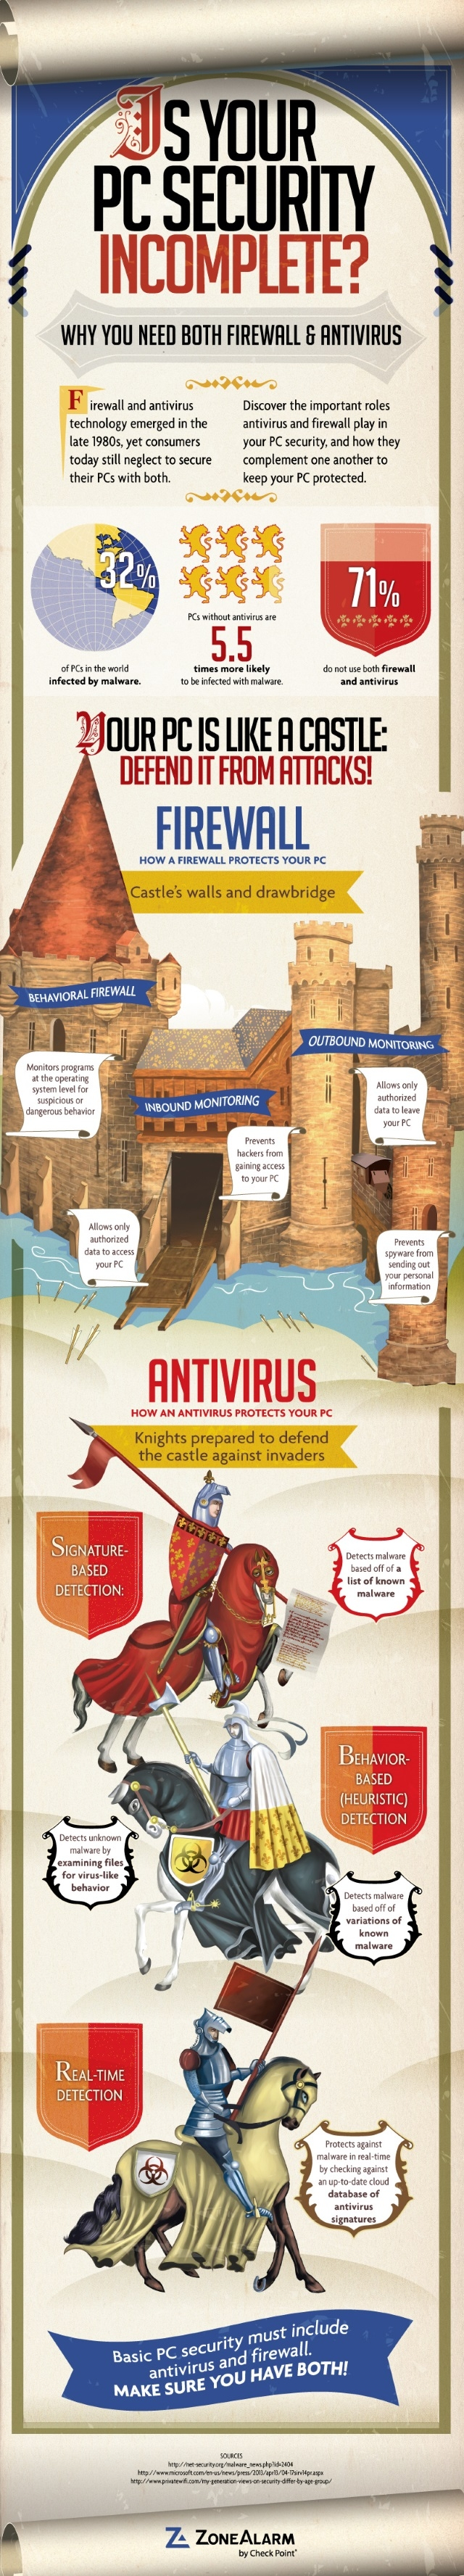 ZoneAlarm_Why-You-Need-Antivirus-and-Firewall640